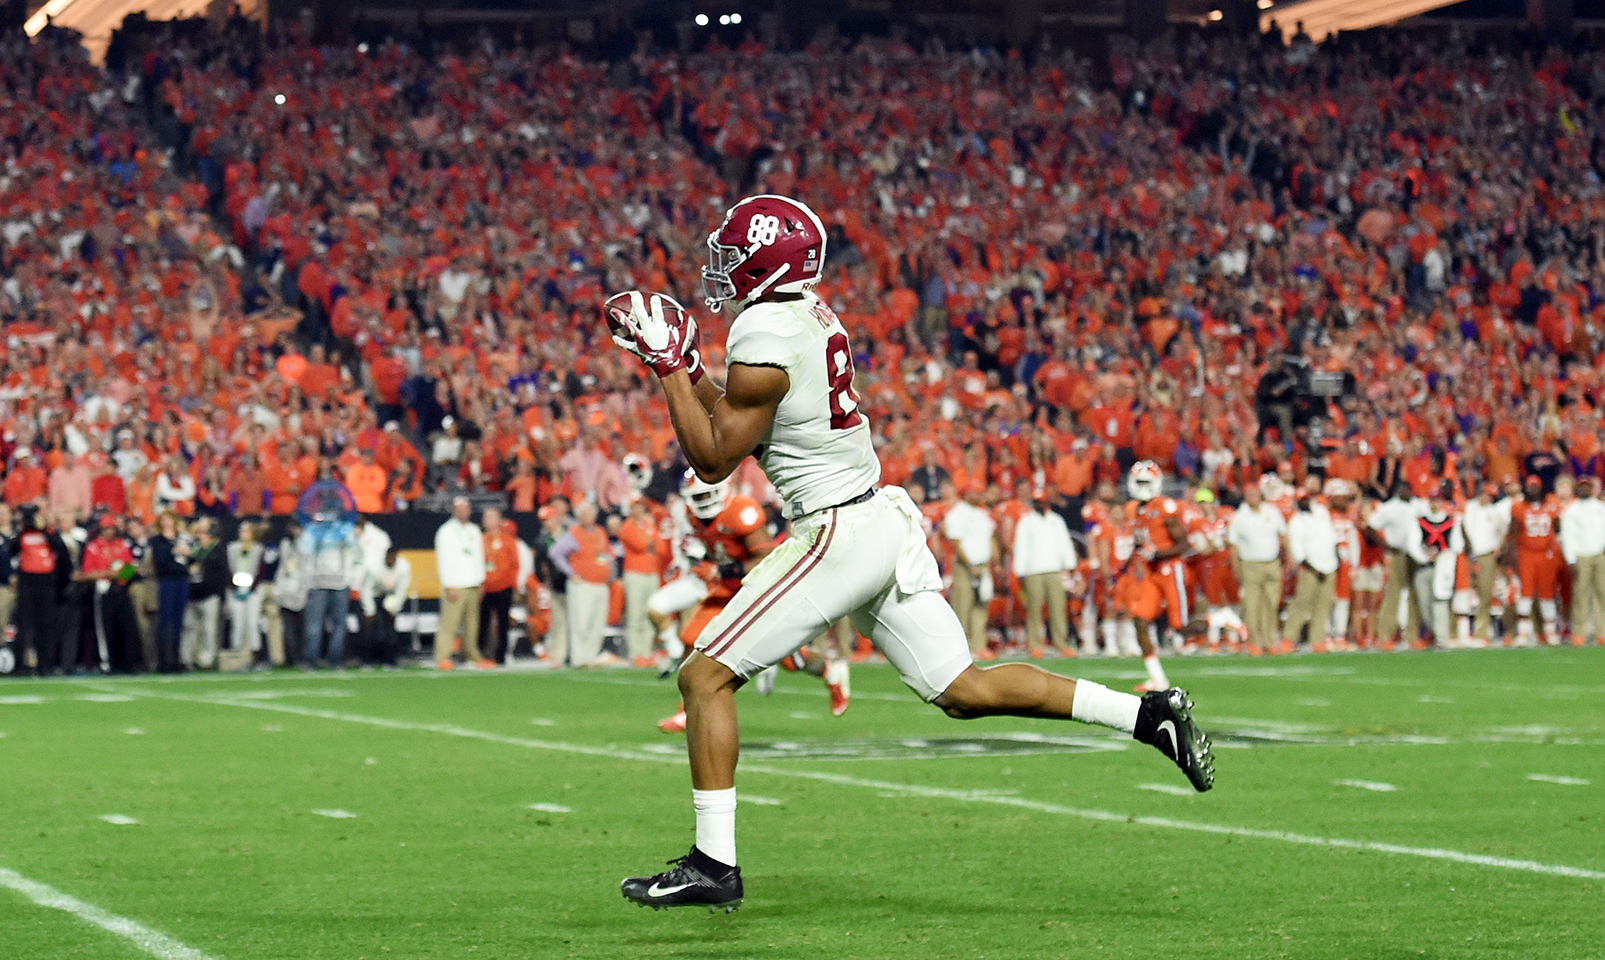 Alabama 45, Clemson 40: With Clemson's defense focused on stopping Heisman Trophy winner Derrick Henry, Crimson Tide tight end O.J. Howard caught five passes for 208 yards and two touchdowns to lead his team to a five-point win in the national title game.